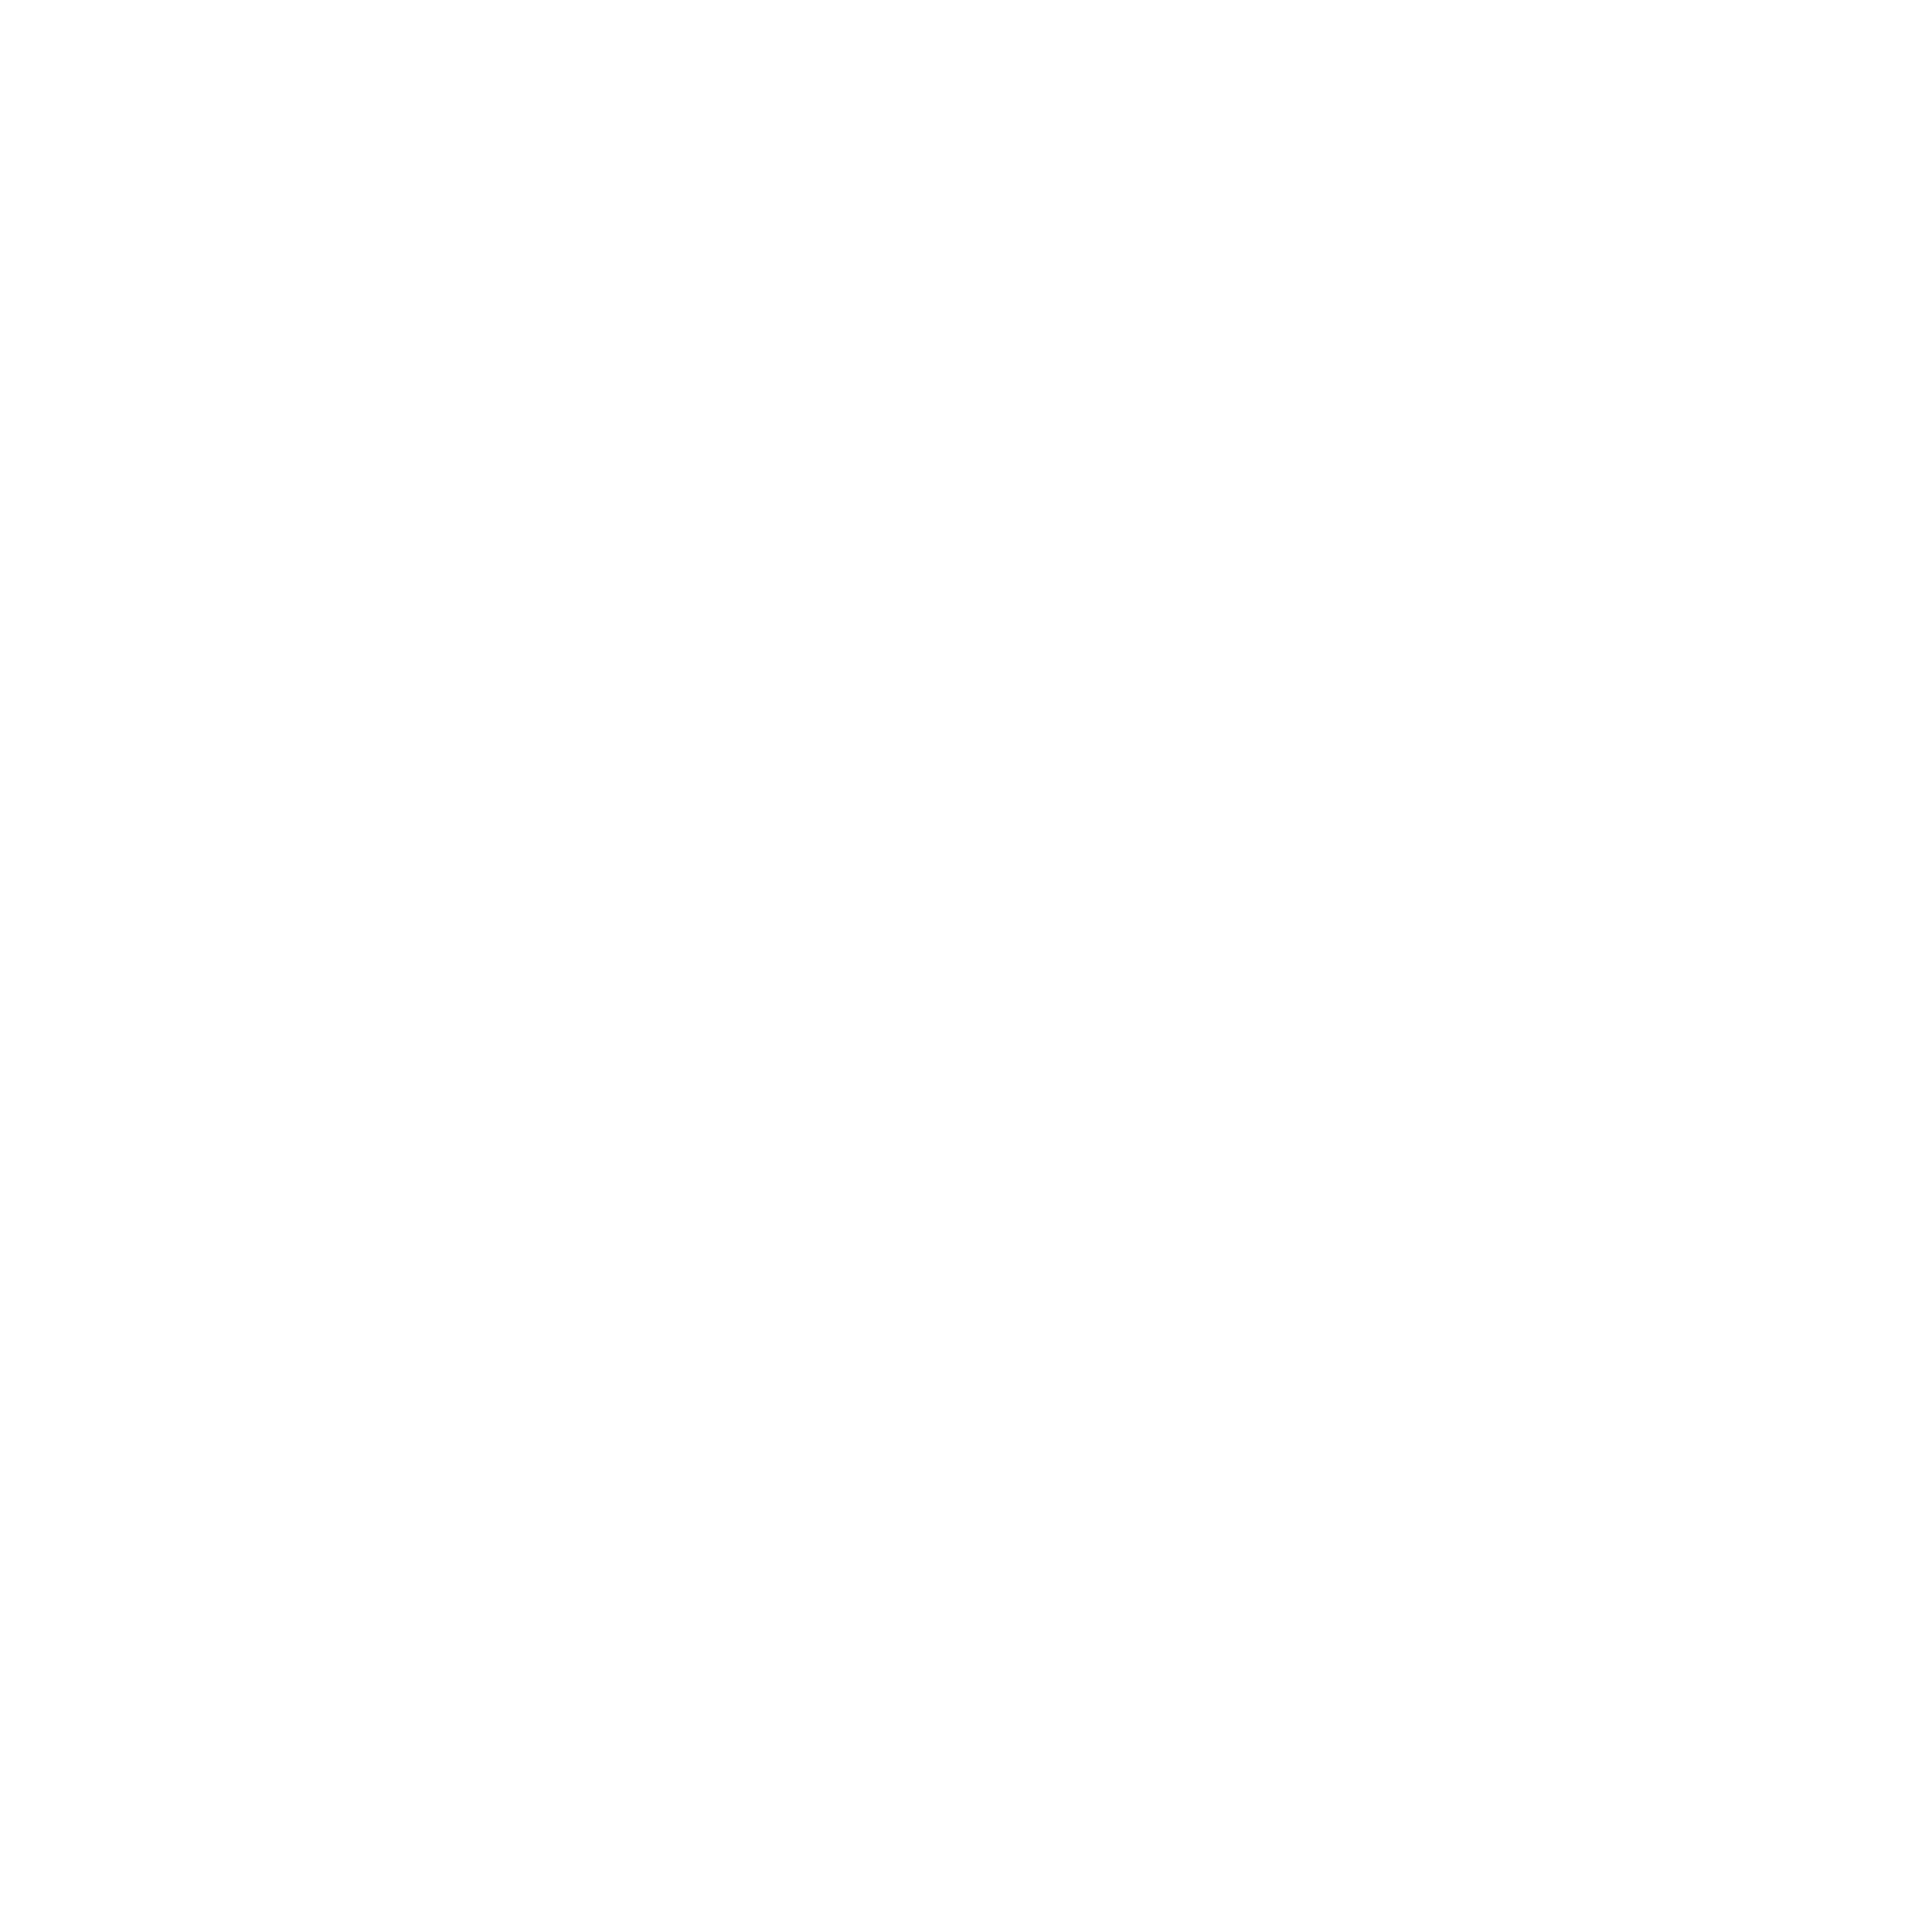 roaster Small Planes's logo